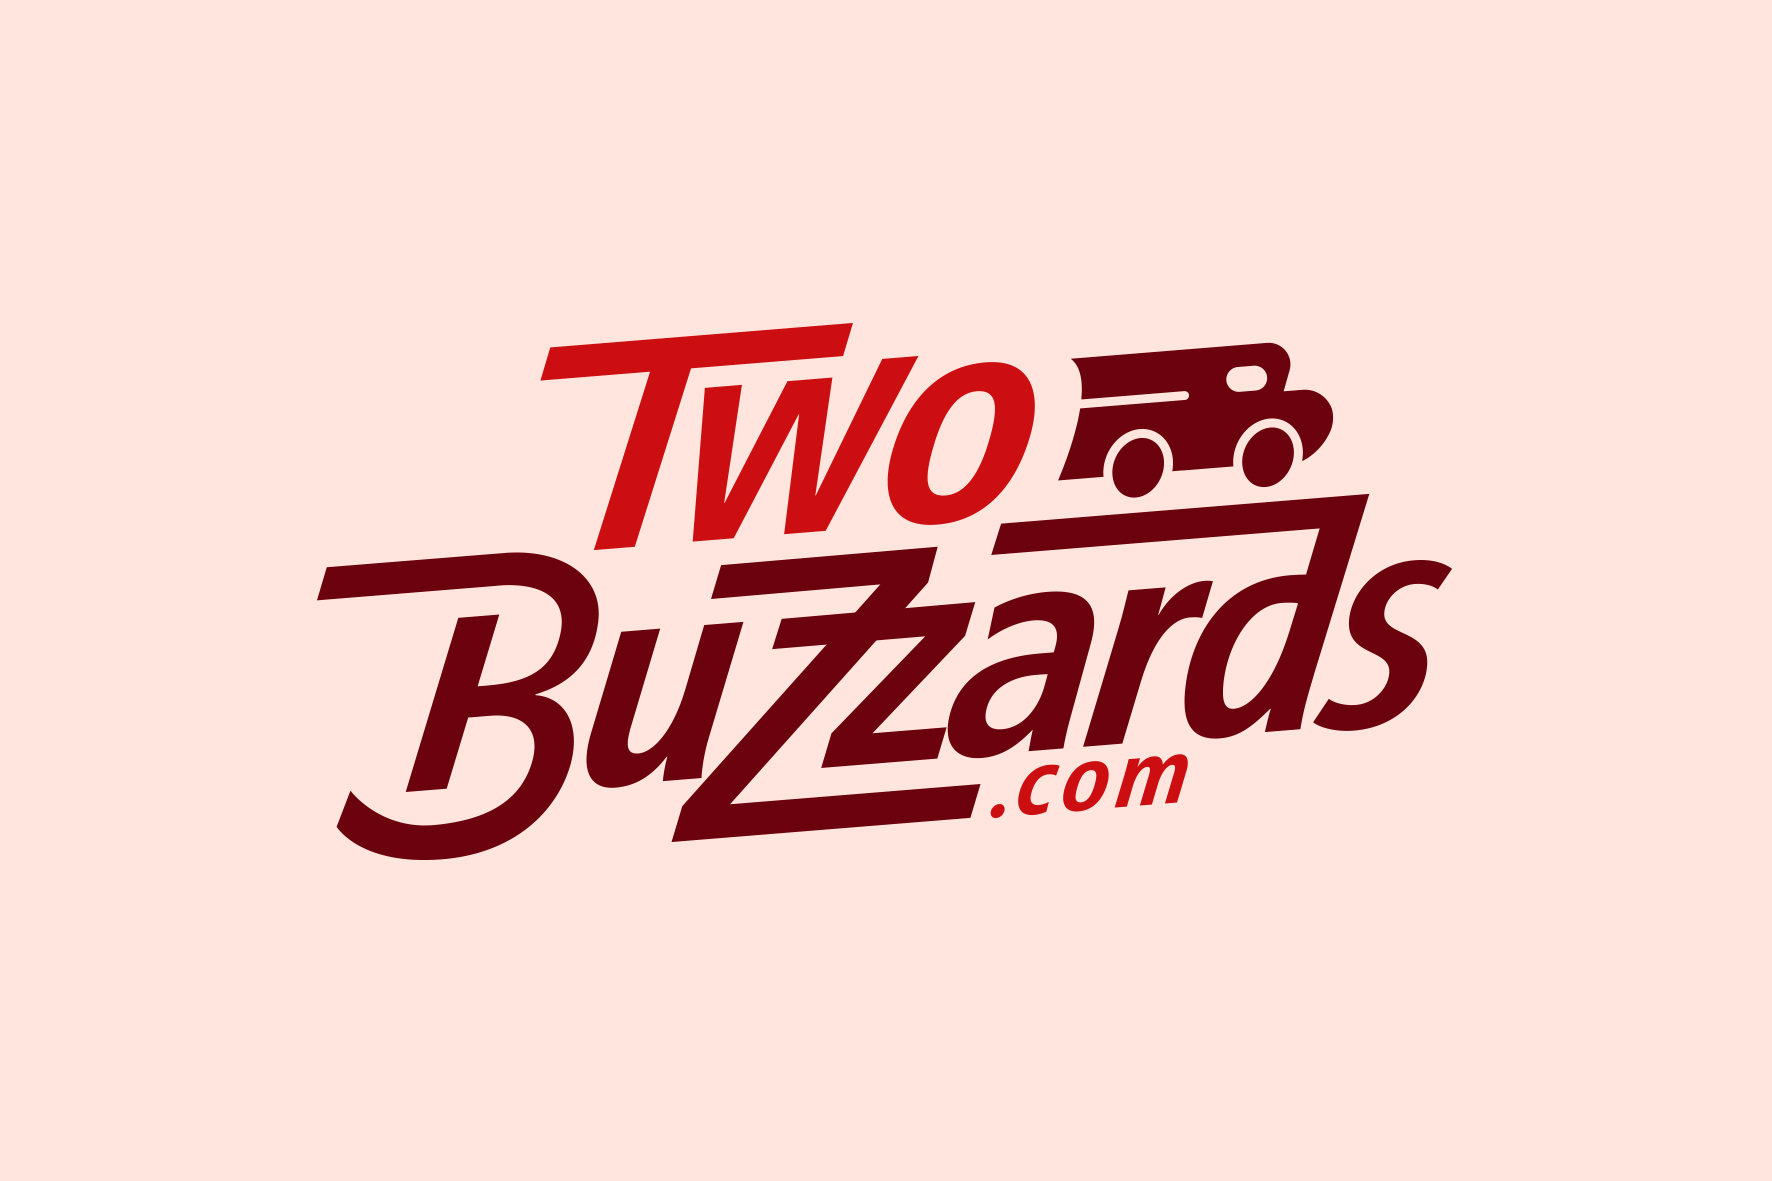 Brand logo for Two Buzzards courier company